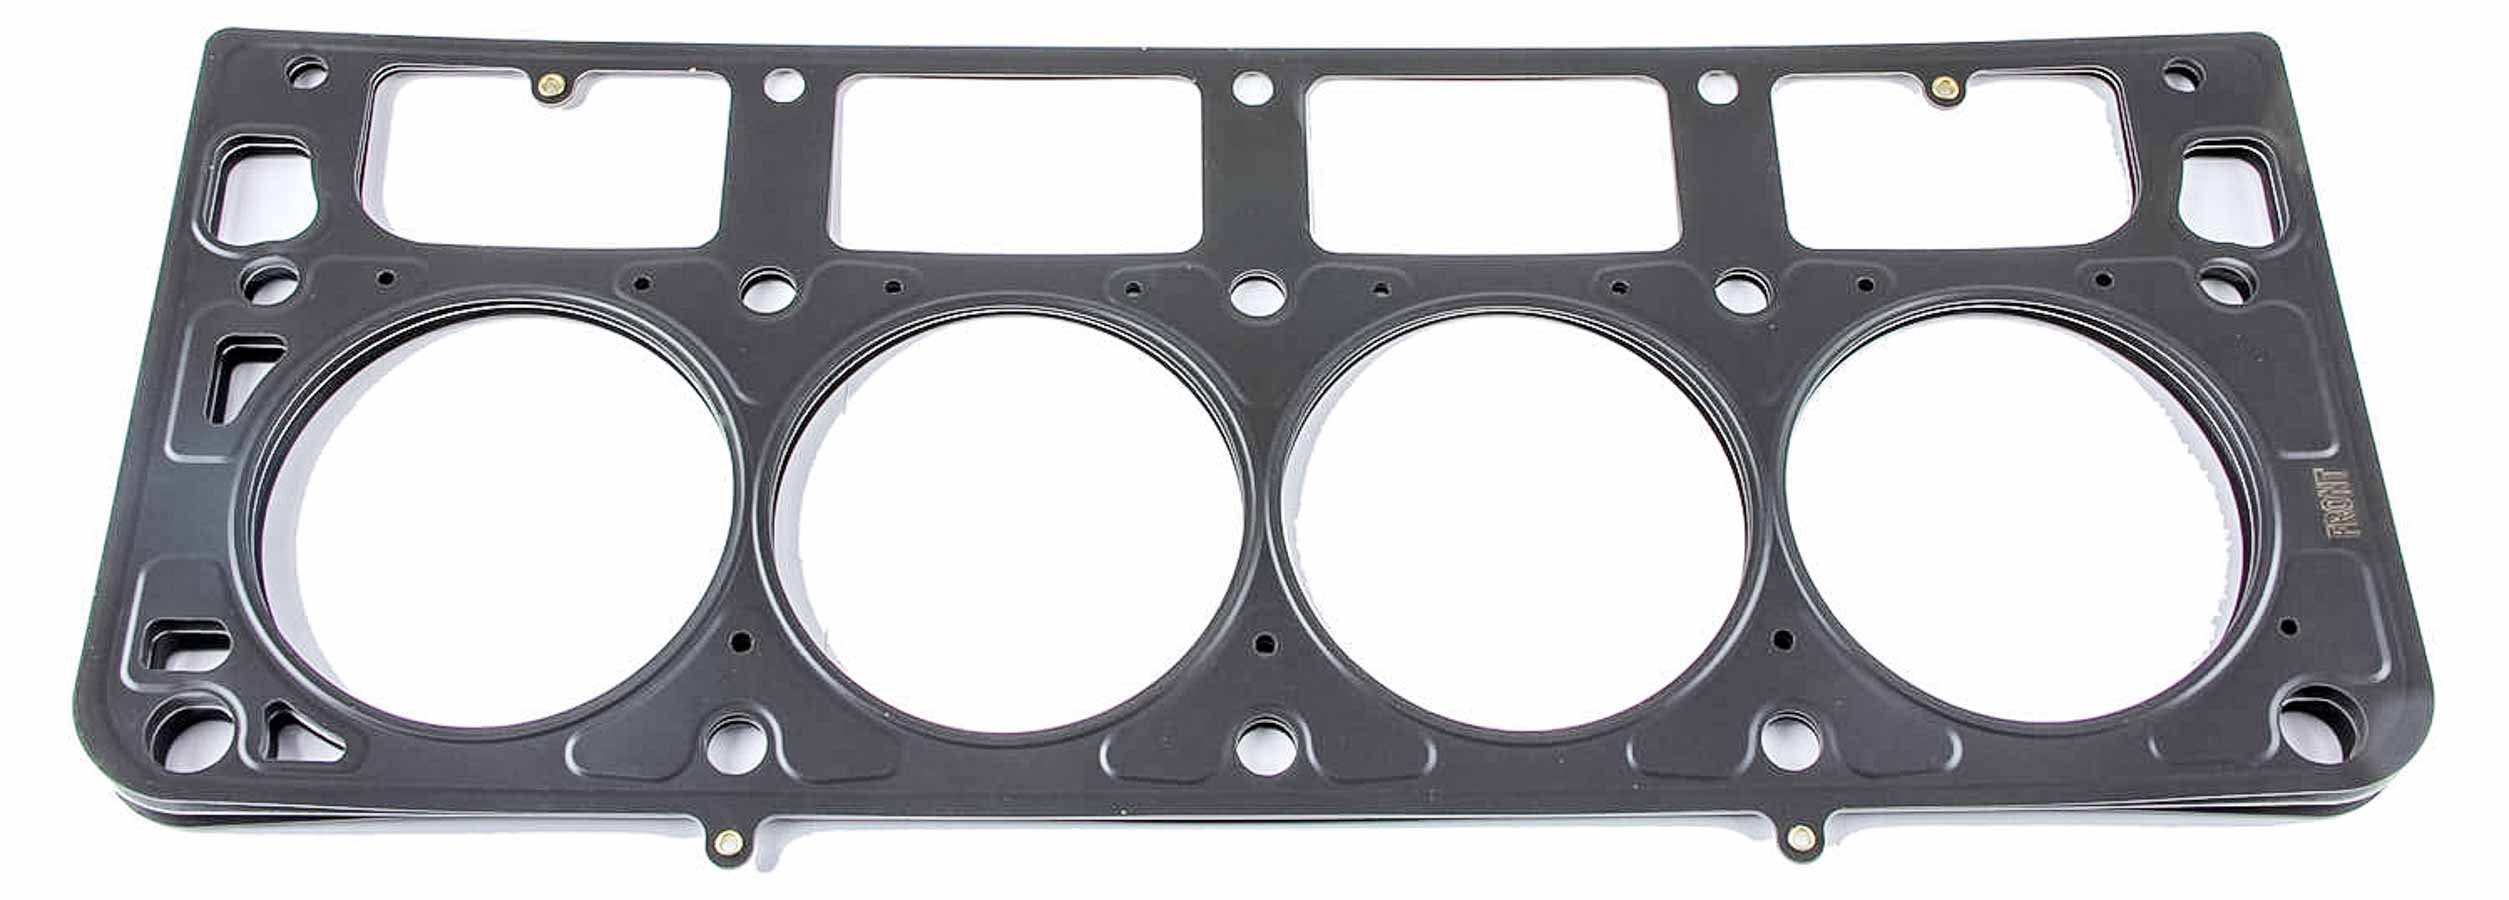 Cometic C5751-030 Head Gasket